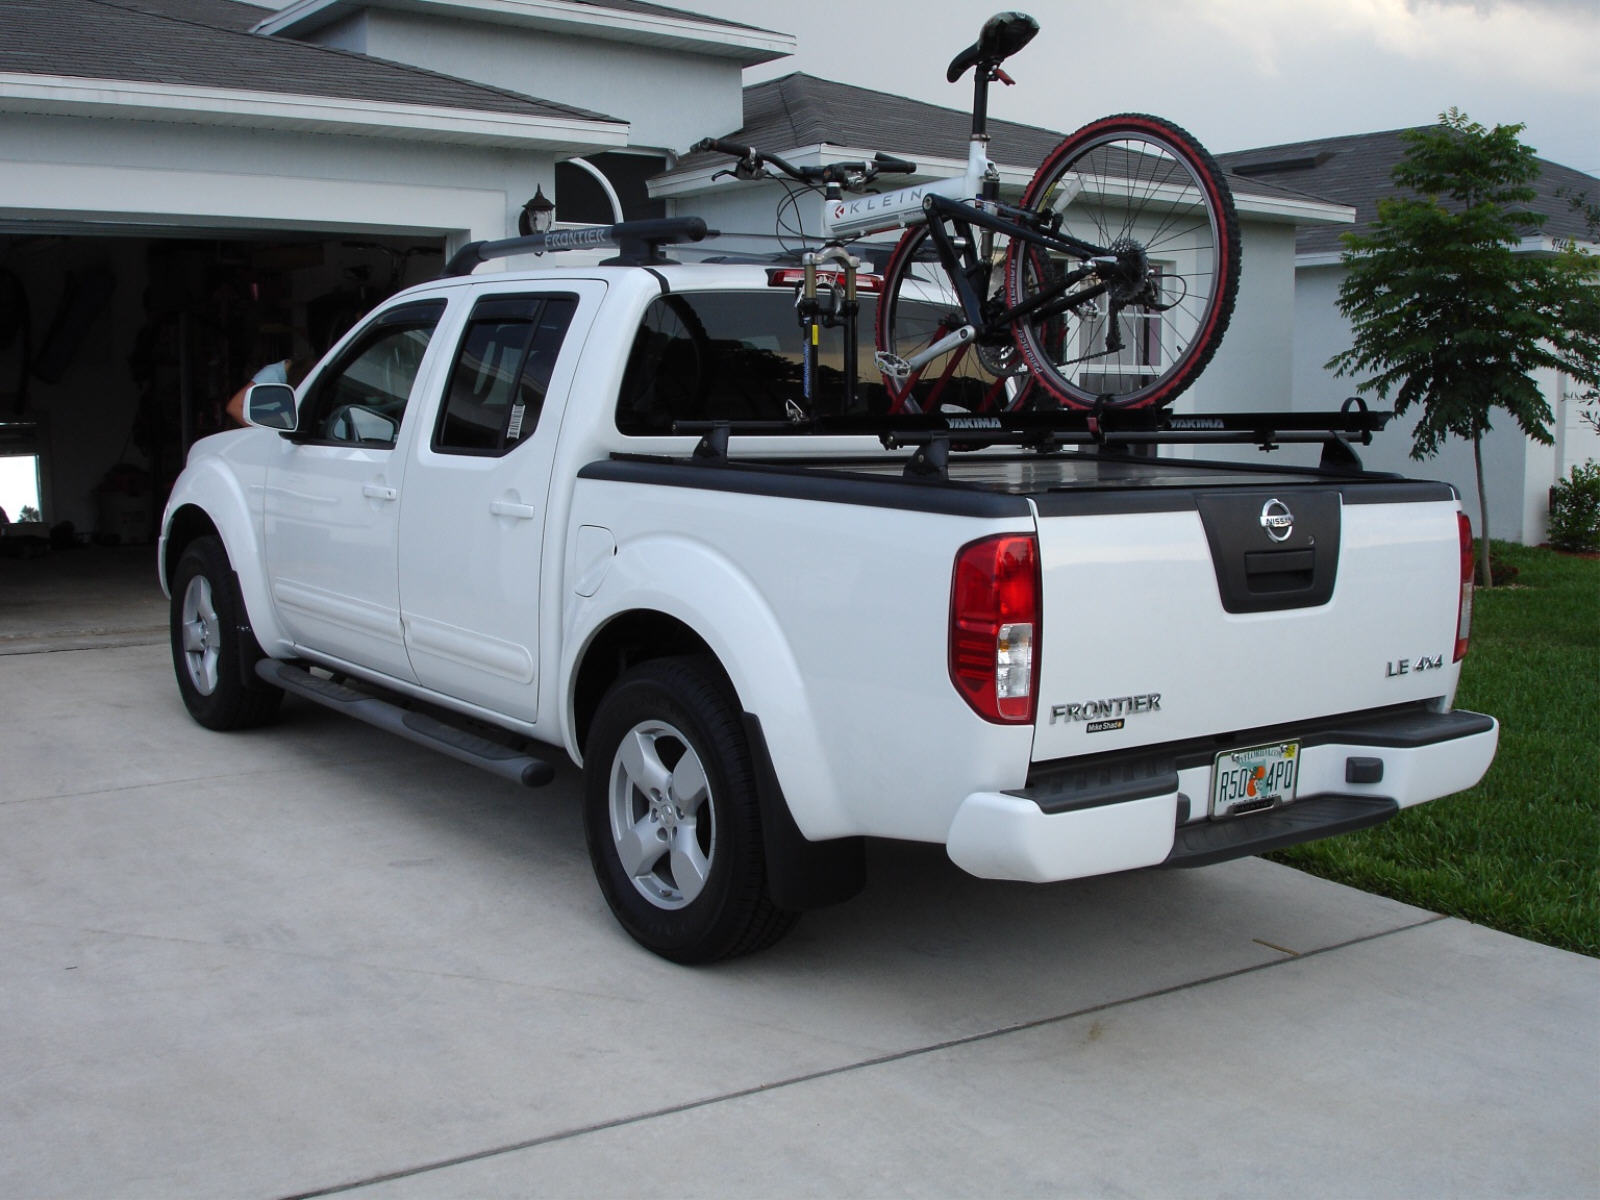 Bikes Racks For Trucks D Rollbak Bedcover Bike Rack